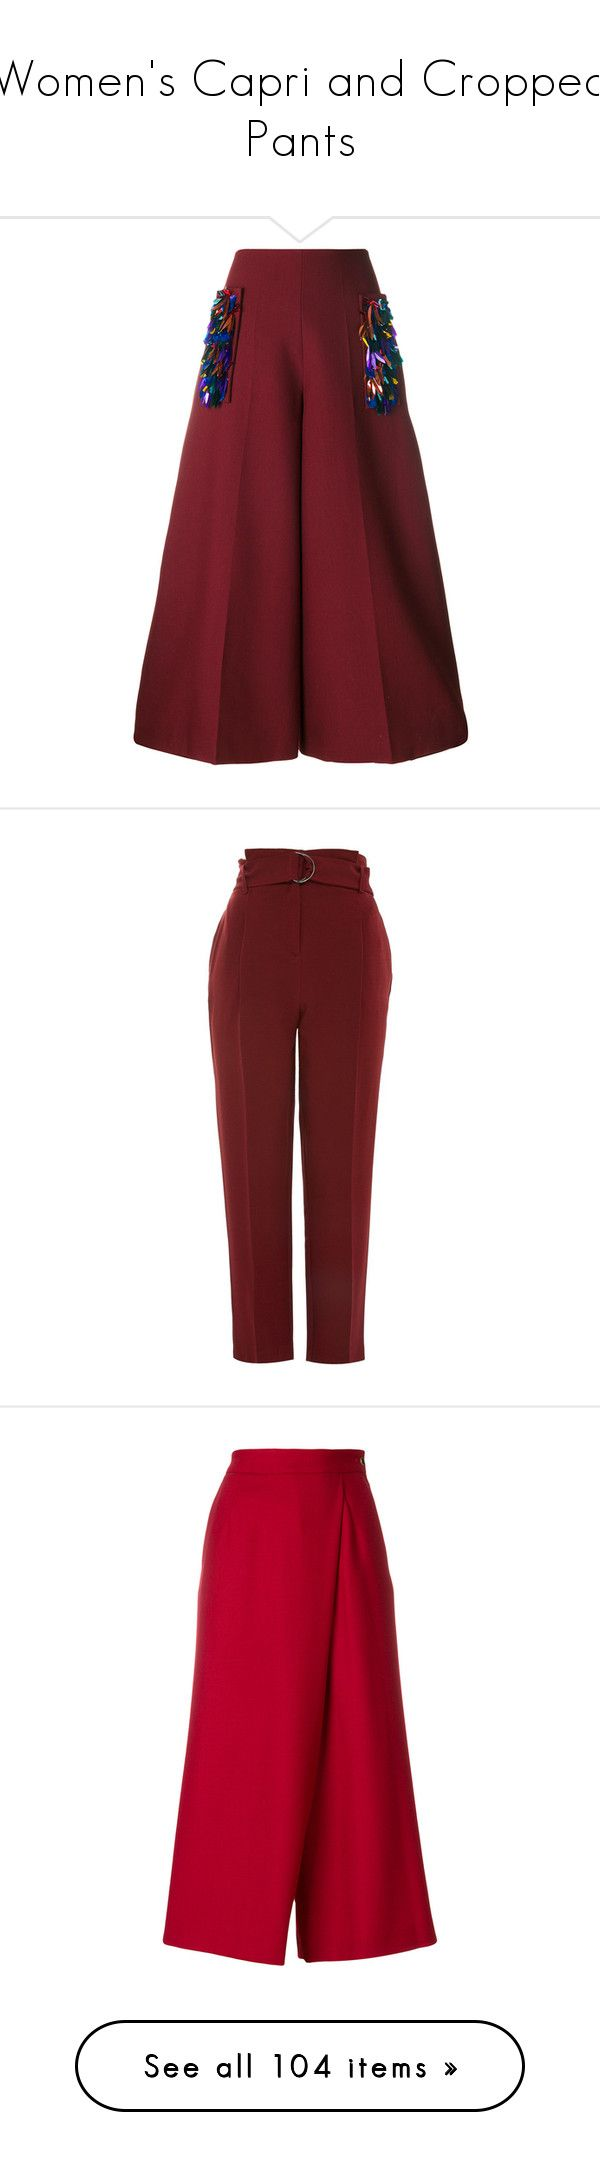 """""""Women's Capri and Cropped Pants"""" by danielle-valentine-666 ❤ liked on Polyvore featuring pants, capris, trousers, red, embellished pants, burgundy pants, delpozo, red trousers, red pants and bottoms"""